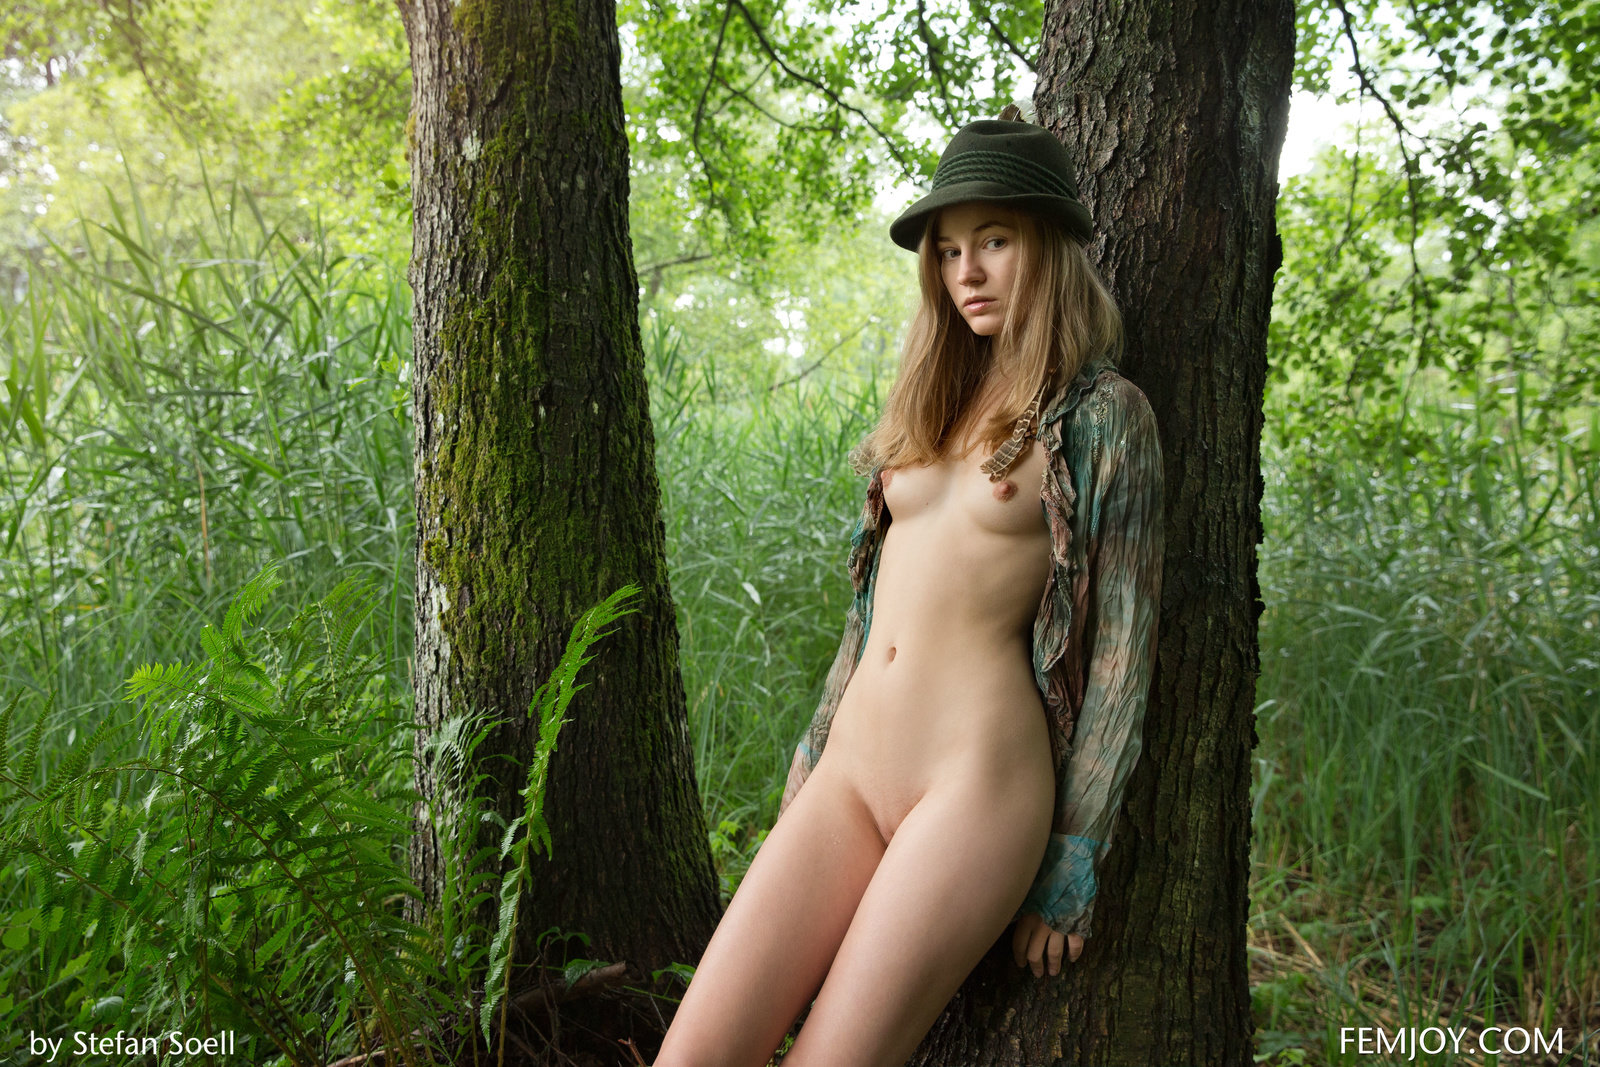 teens-cherry-nudes-erotic-beauties